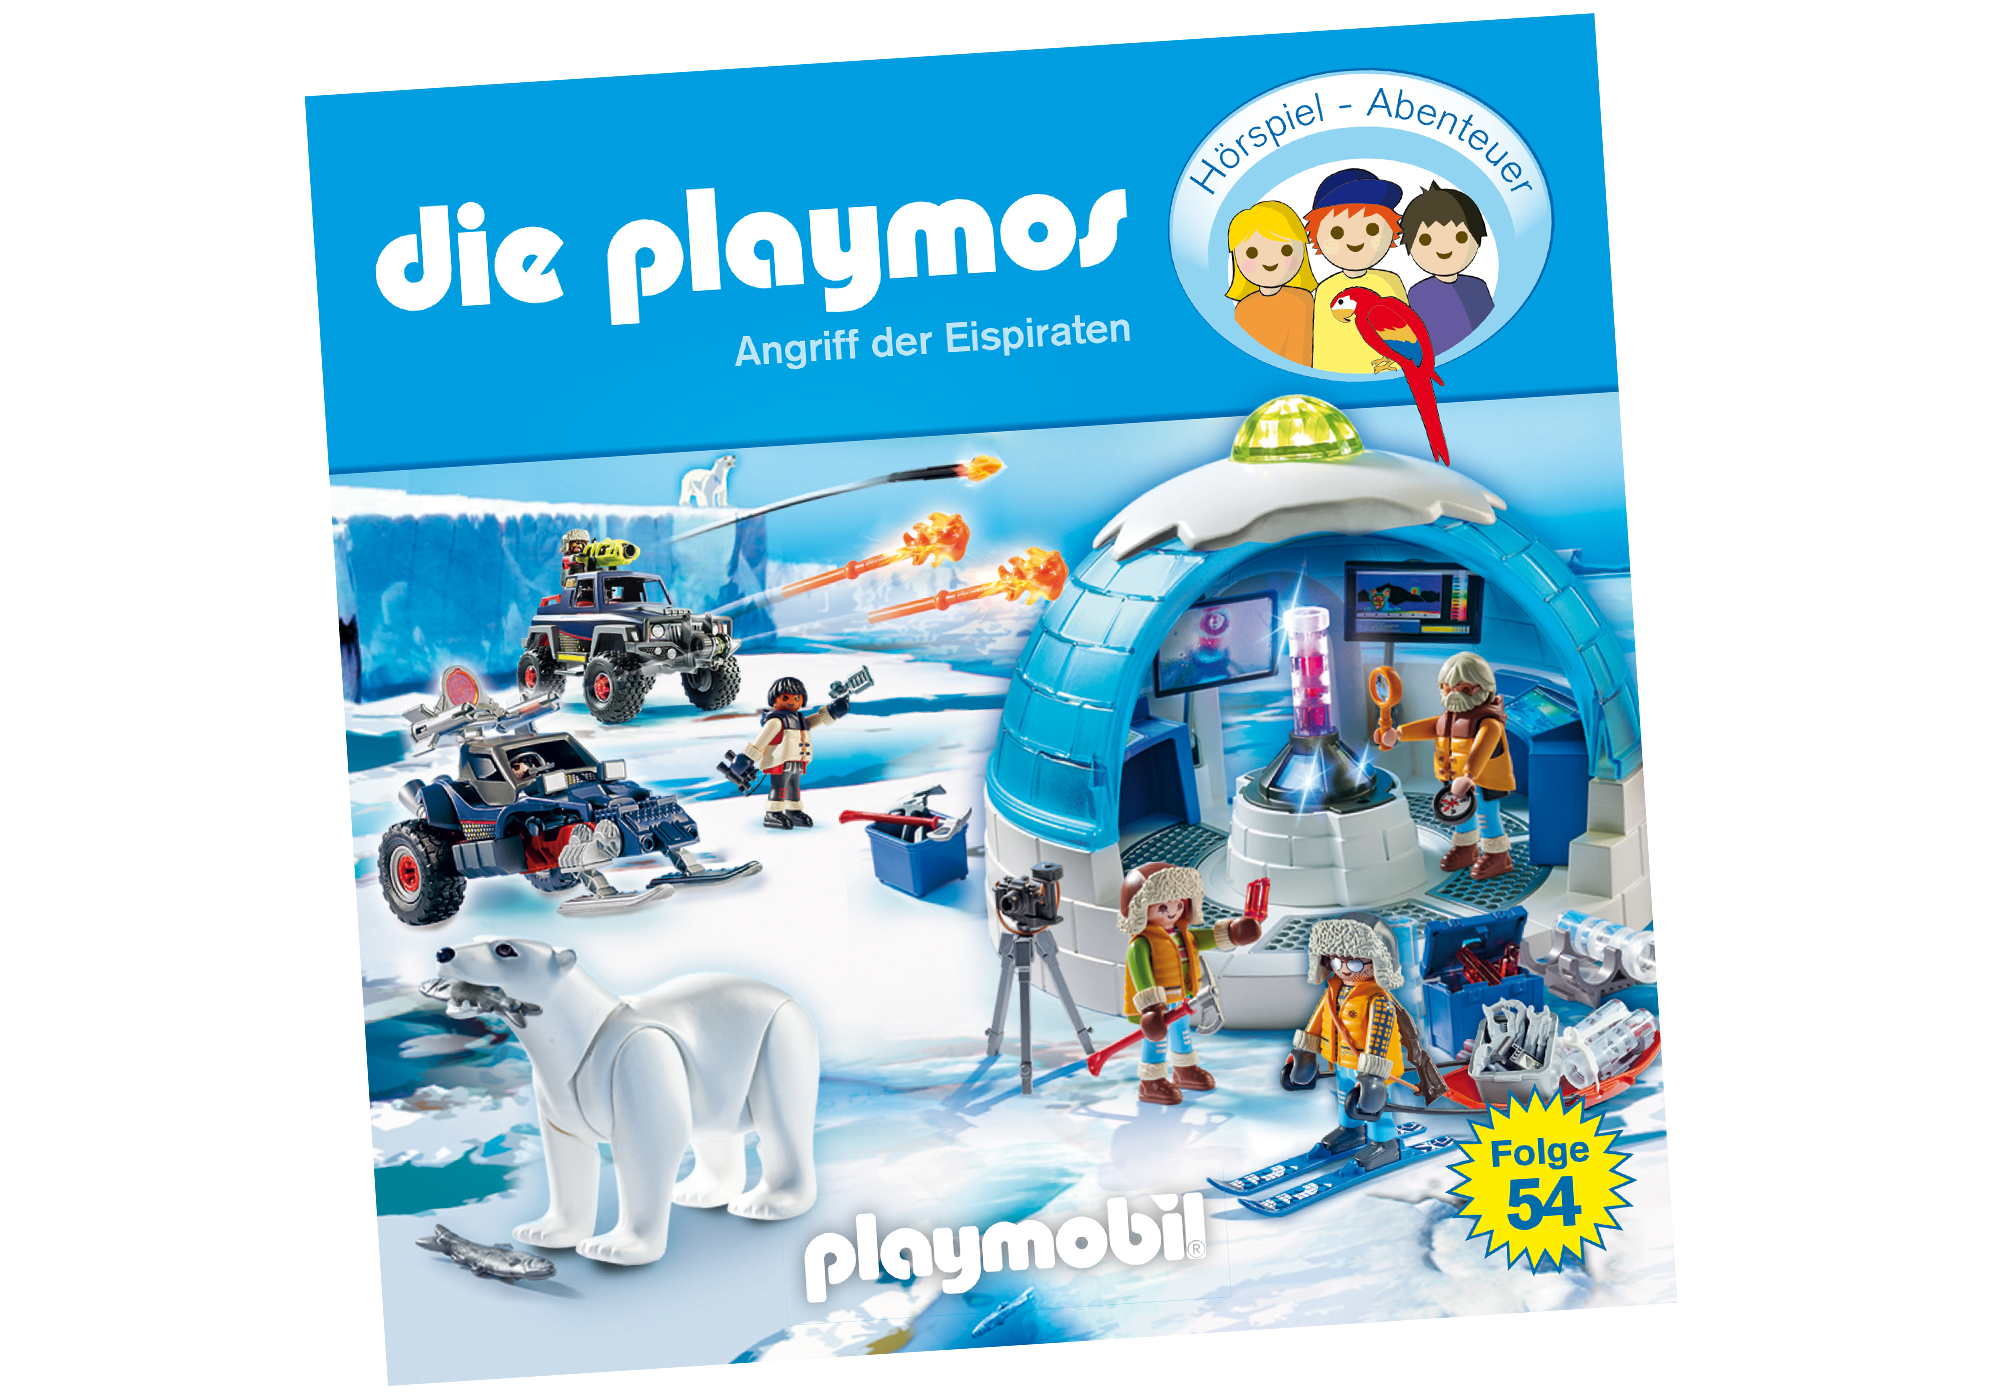 http://media.playmobil.com/i/playmobil/80483_product_detail/Angriff der Eispiraten - Folge 54